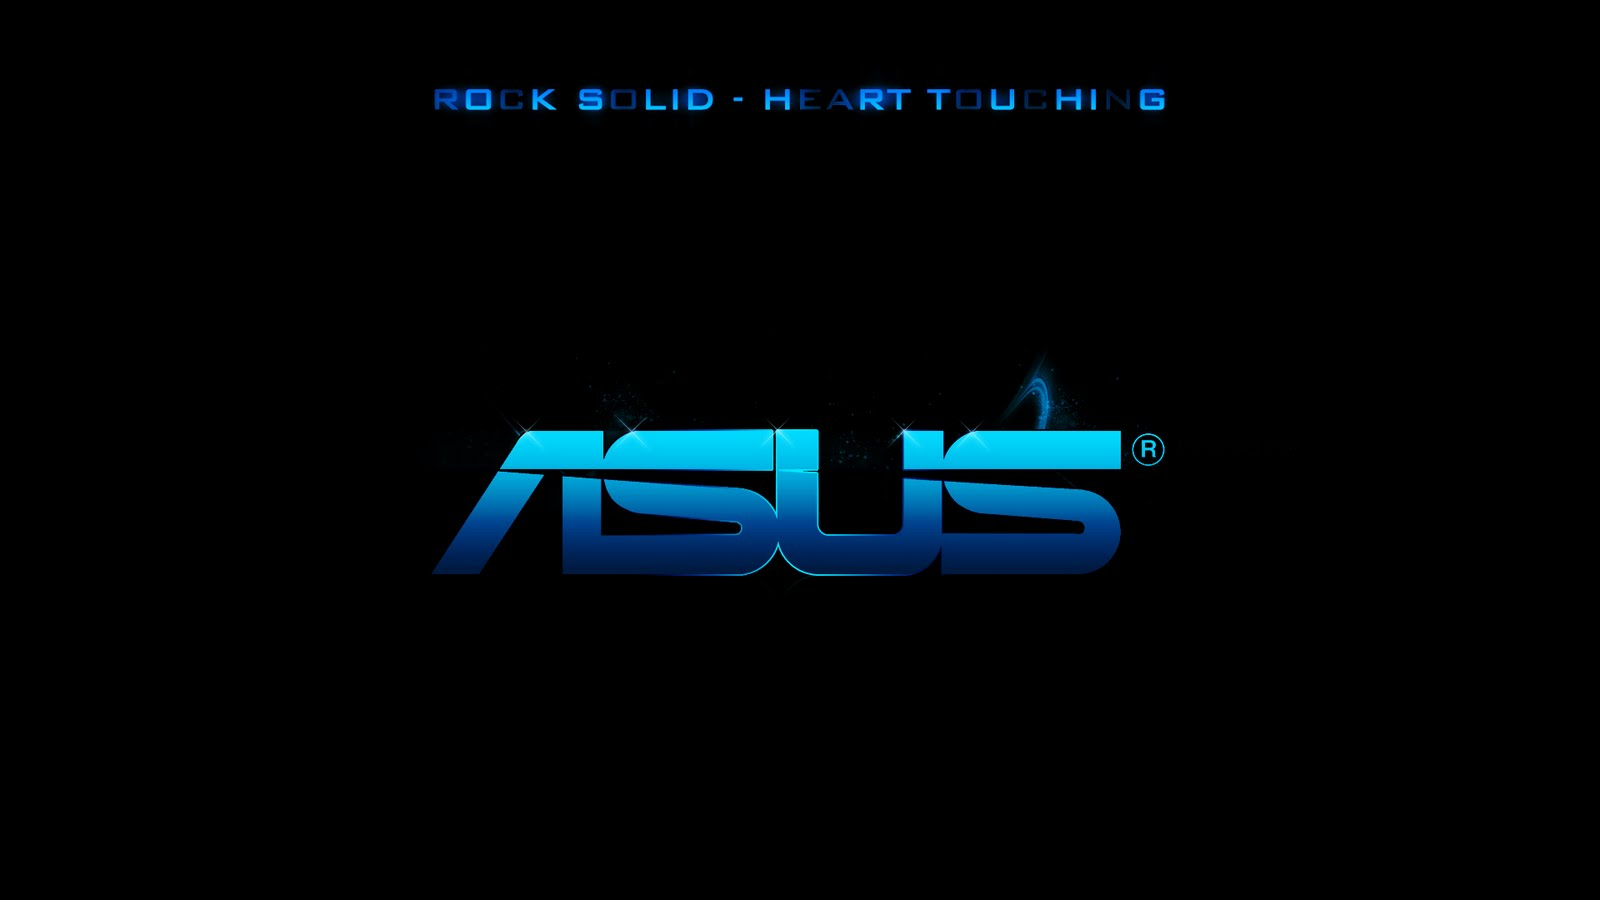 can provide you to HD WallpapersGet Gorgeous Hd Wallpapers Asus 1600x900